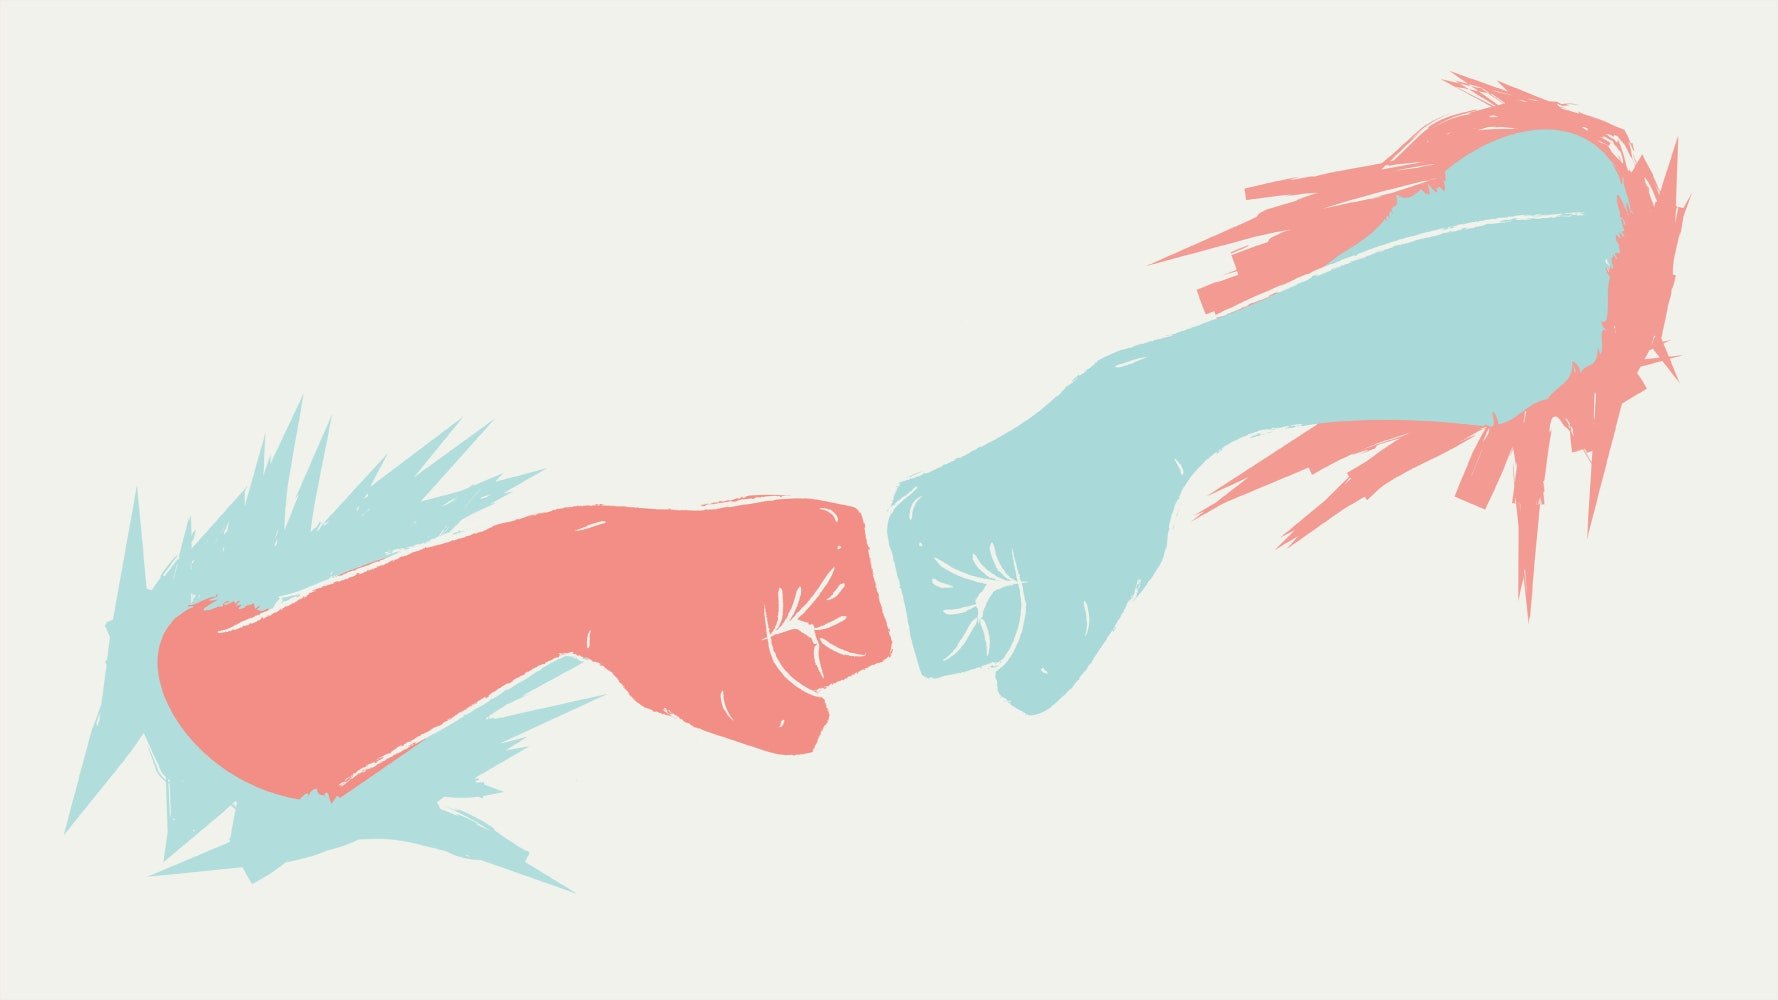 Fist bump between two people